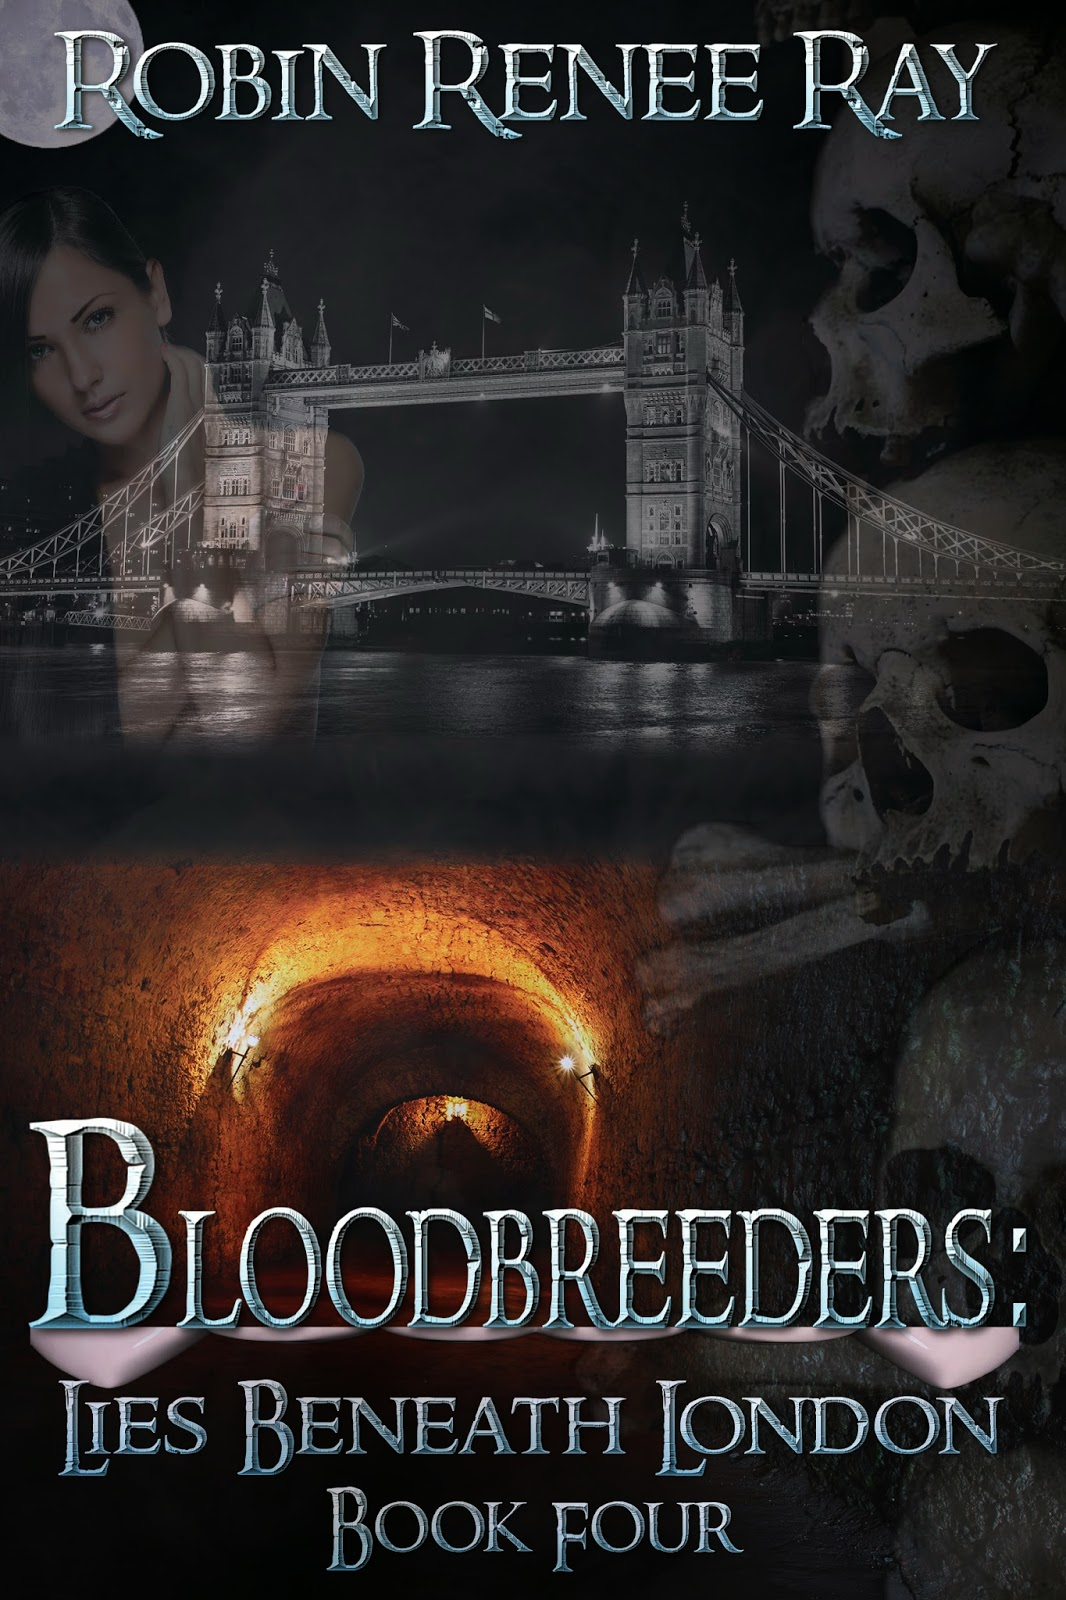 http://www.amazon.com/s/ref=nb_sb_ss_c_0_13?url=search-alias%3Ddigital-text&field-keywords=bloodbreeders&sprefix=bloodbreeders%2Caps%2C214